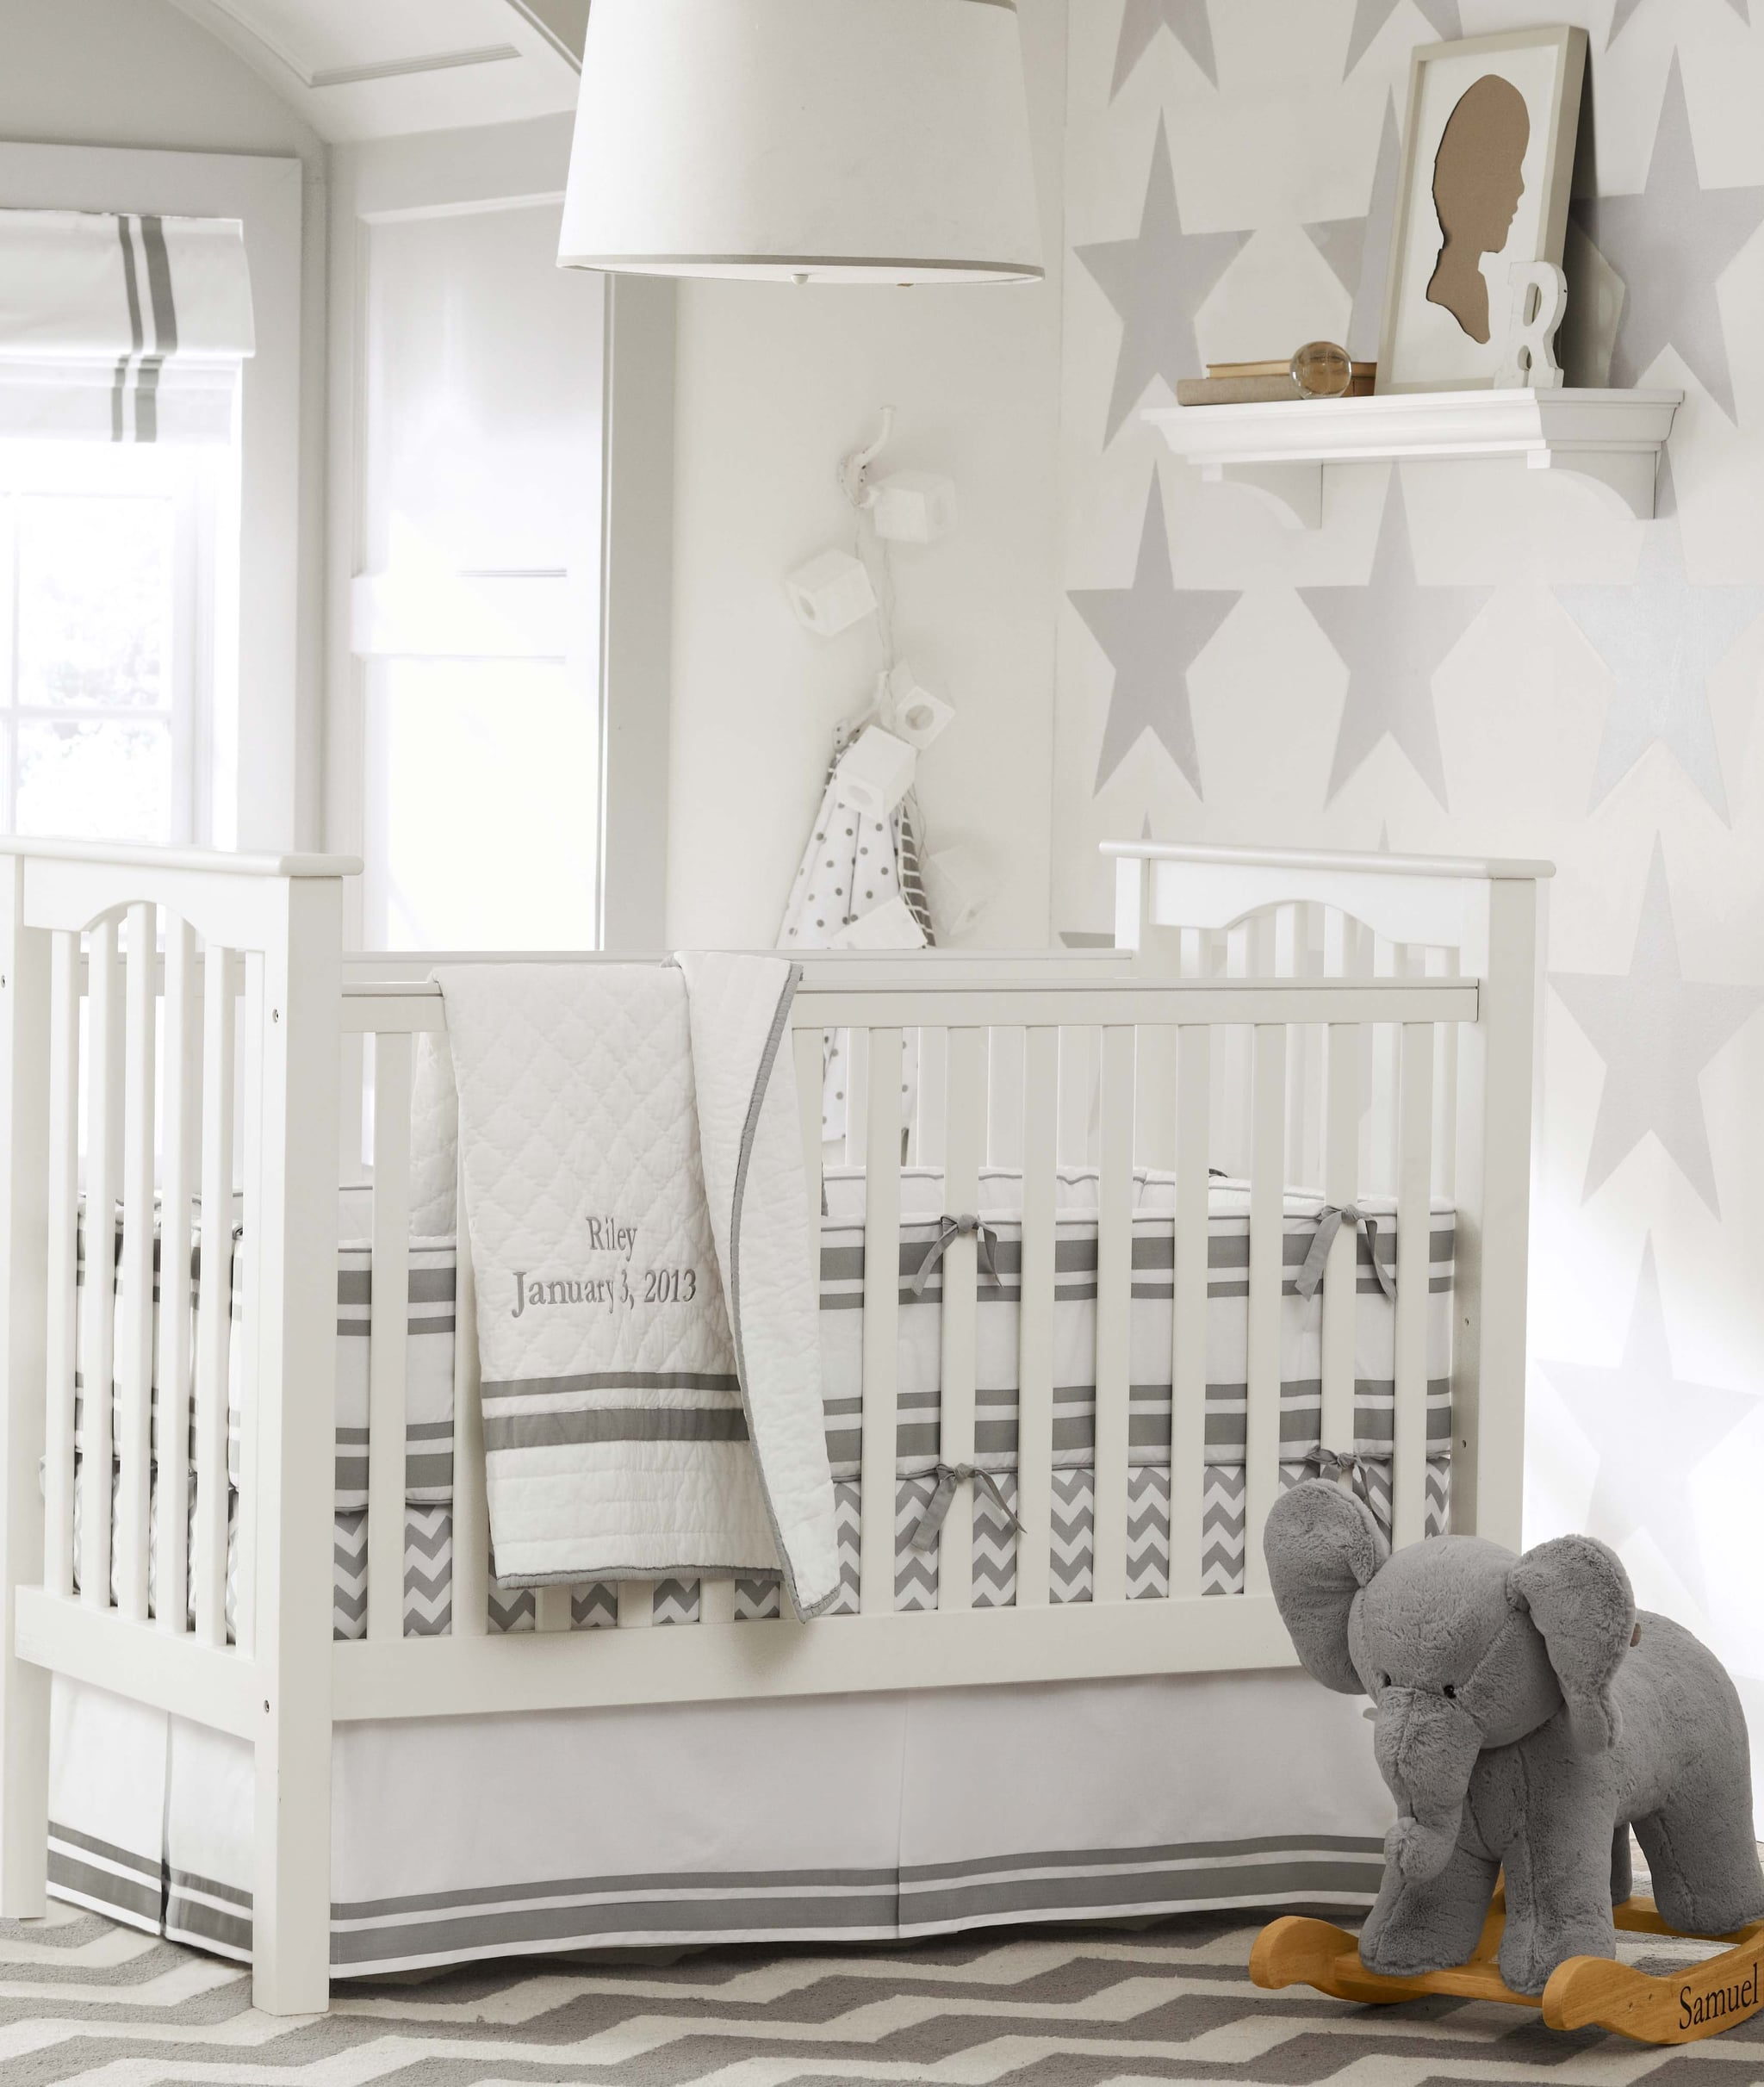 Stargazing in a pottery barn kids room 18 inspiring for Pottery barn kids room ideas